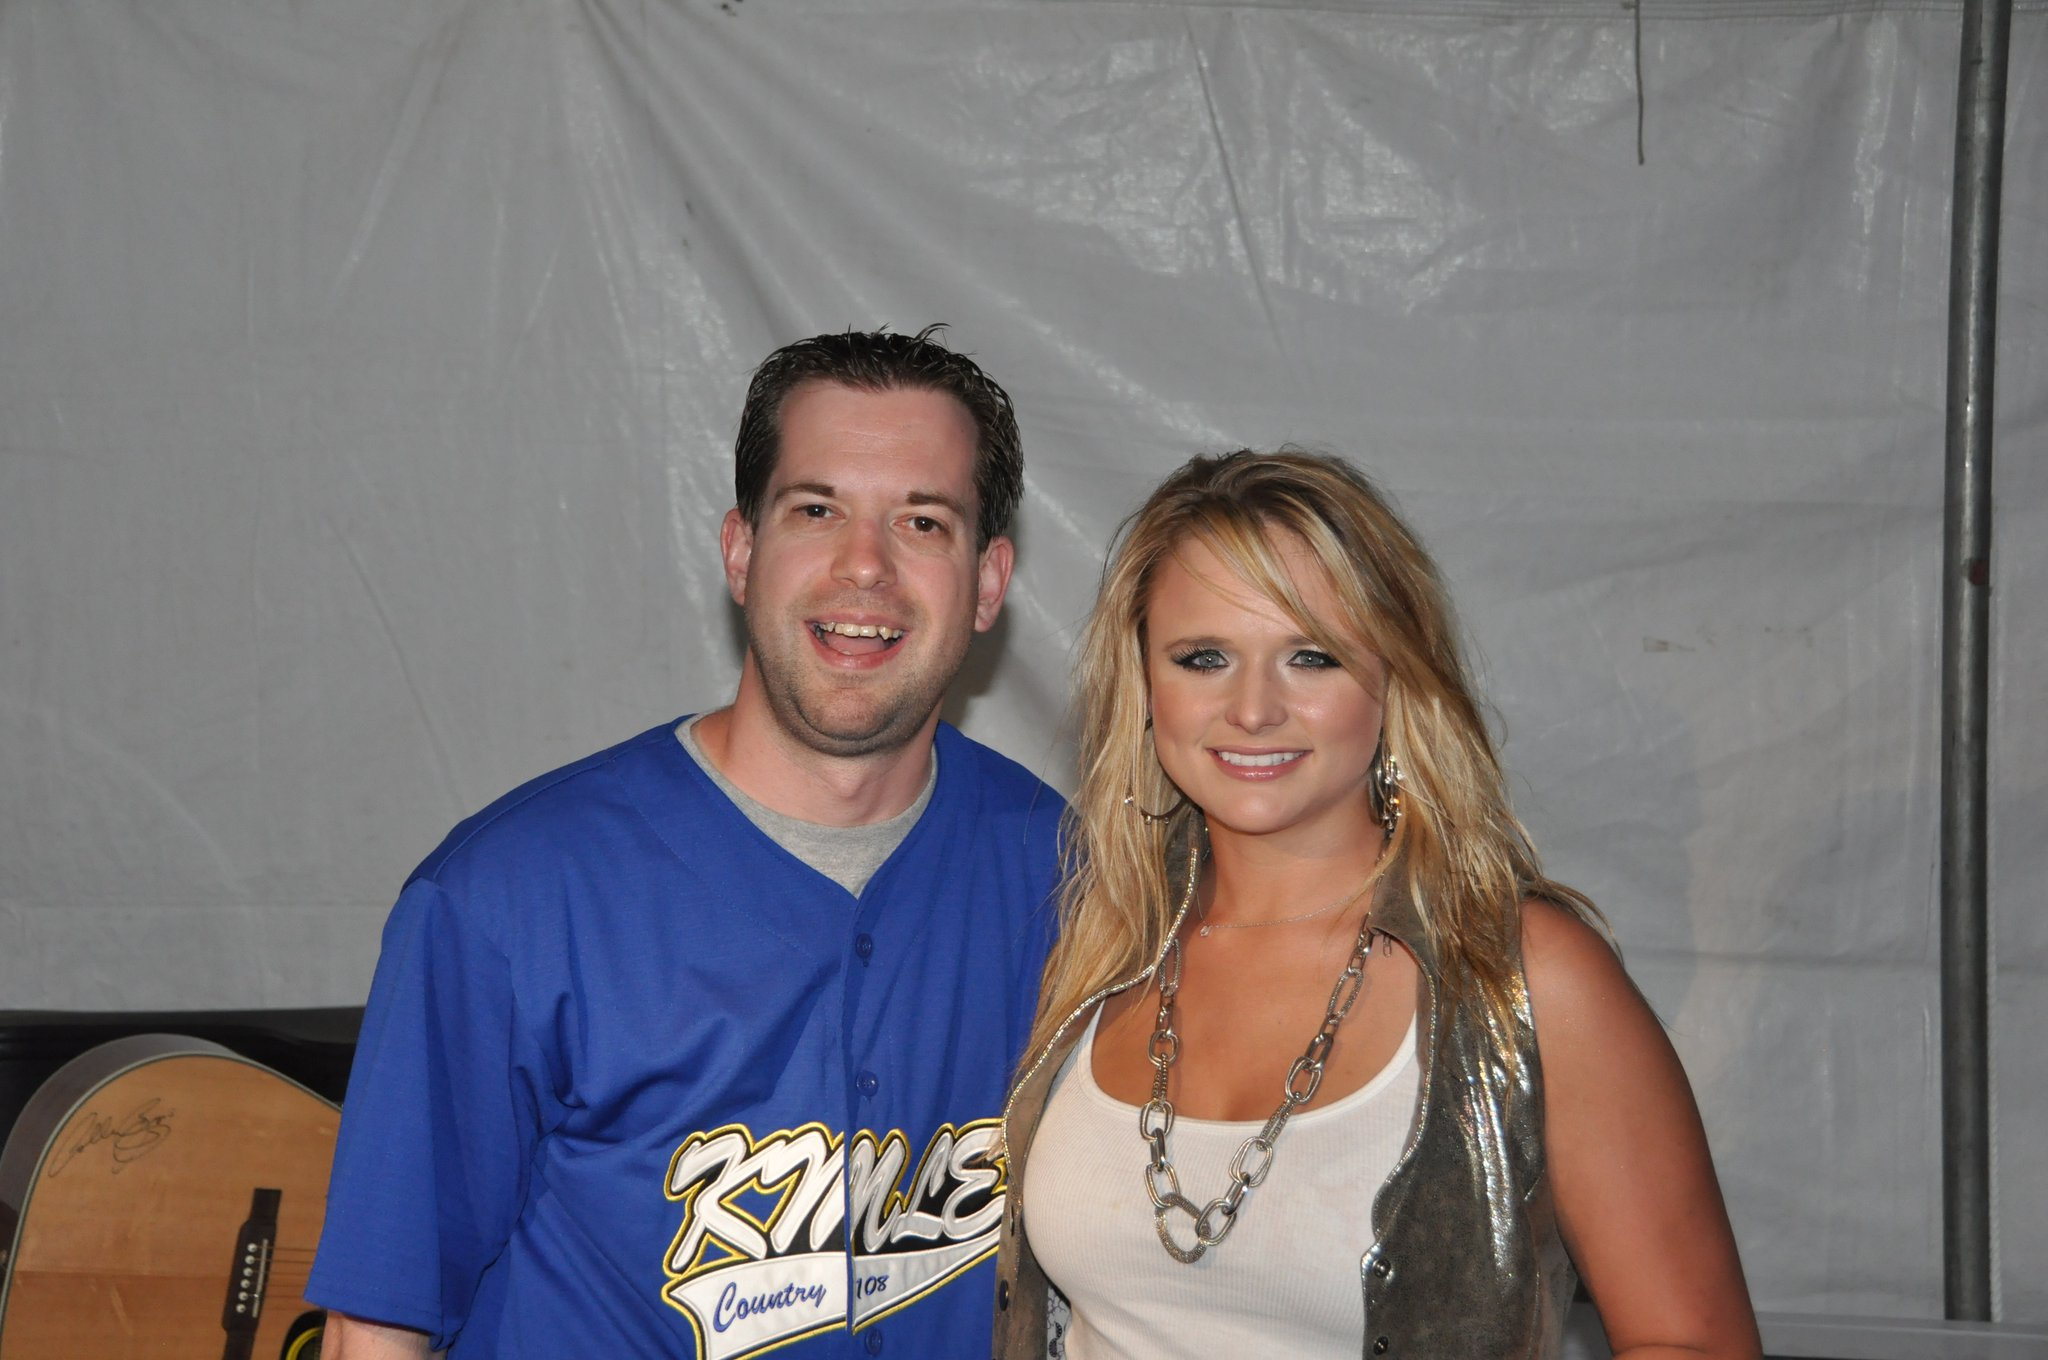 Miranda Lambert was such a sweetheart!